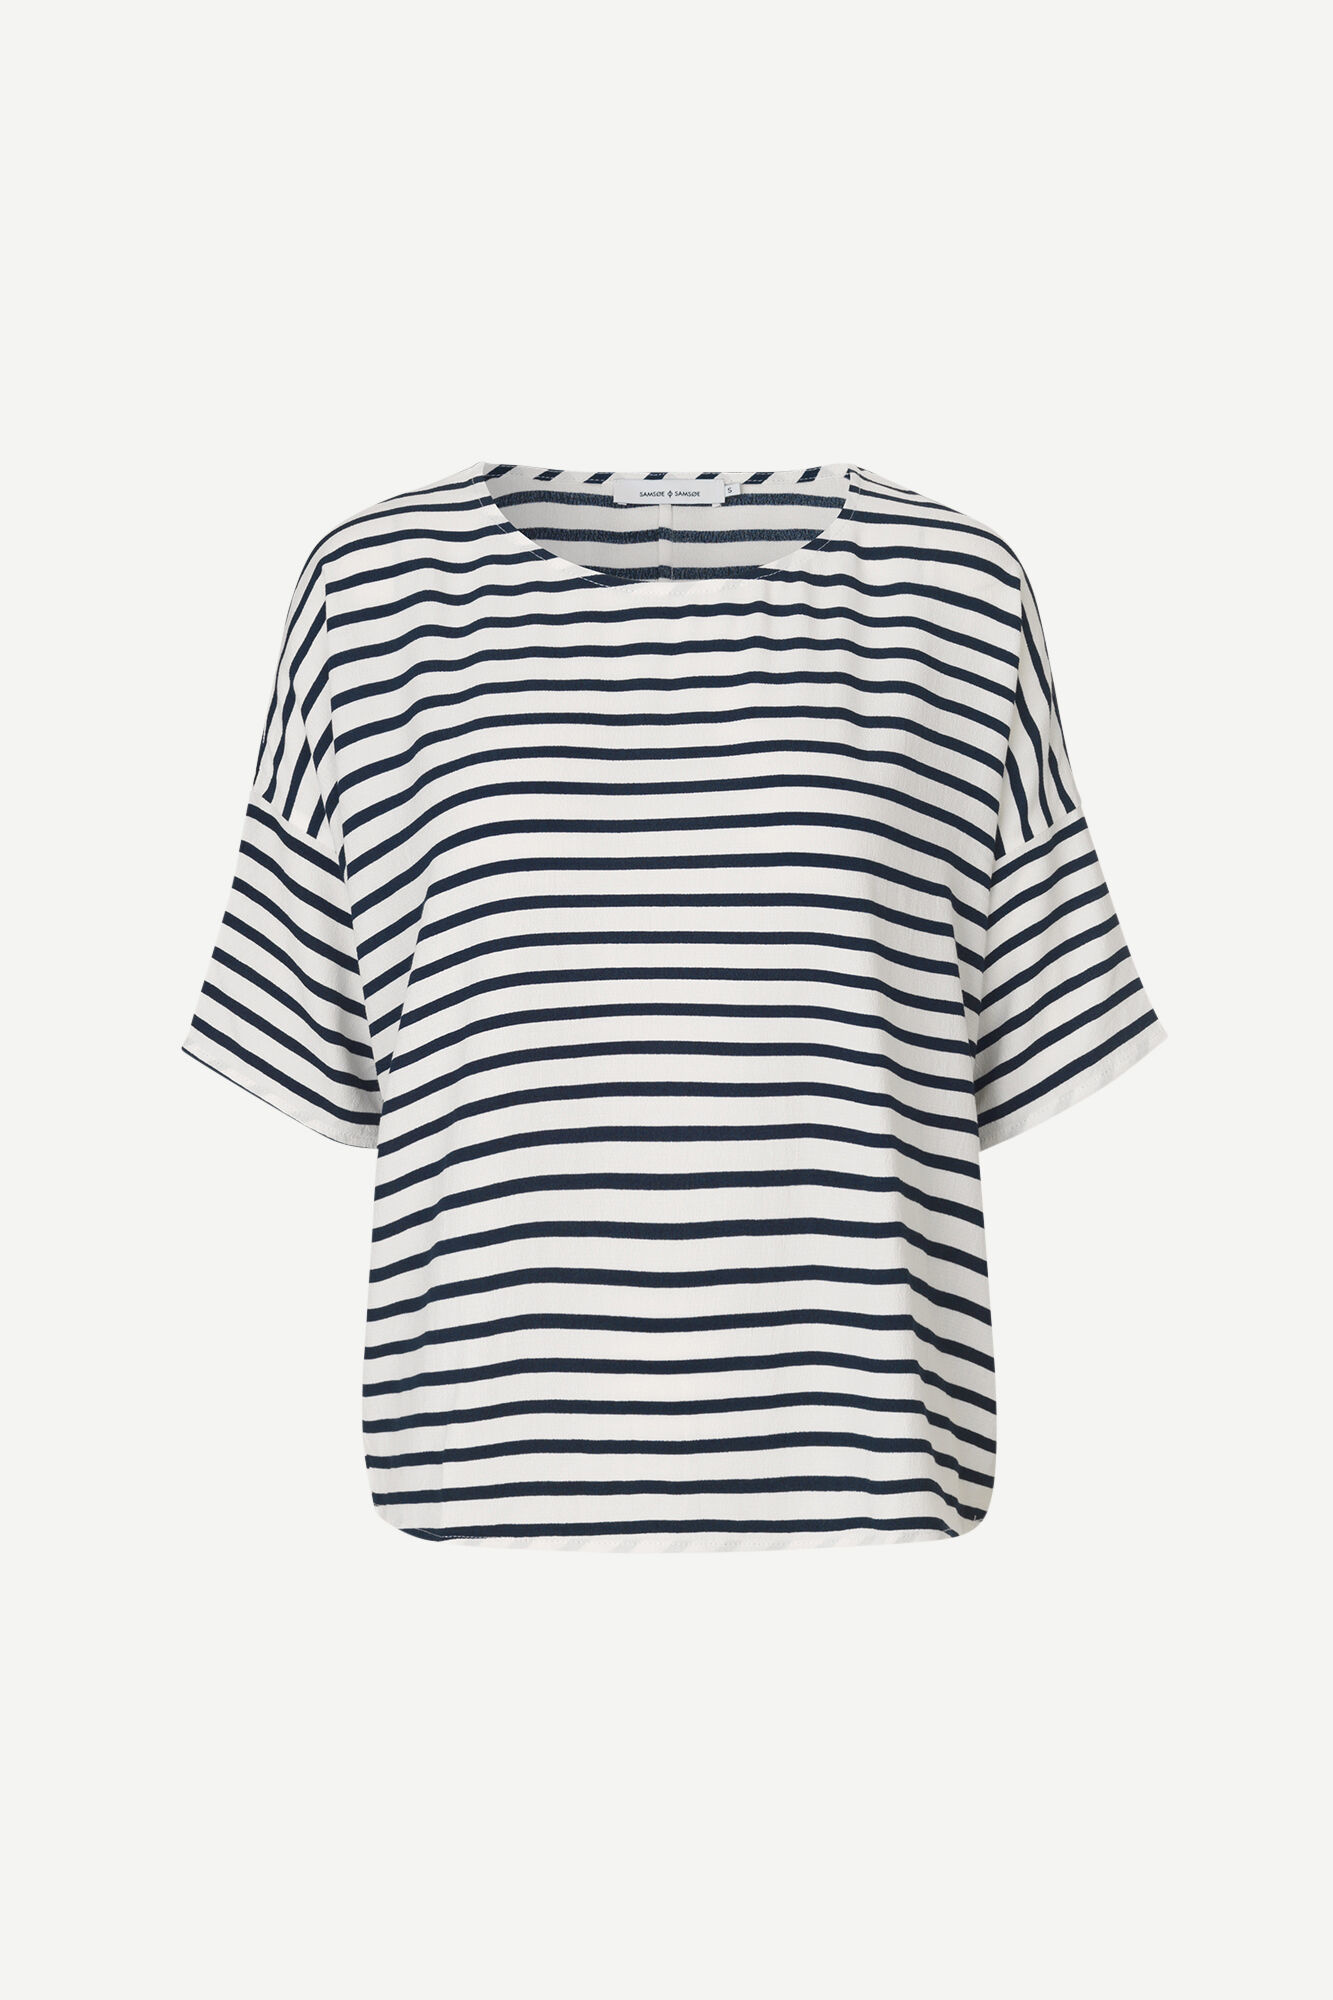 Mains Tee  White Blue Cream Stripe 5687-1